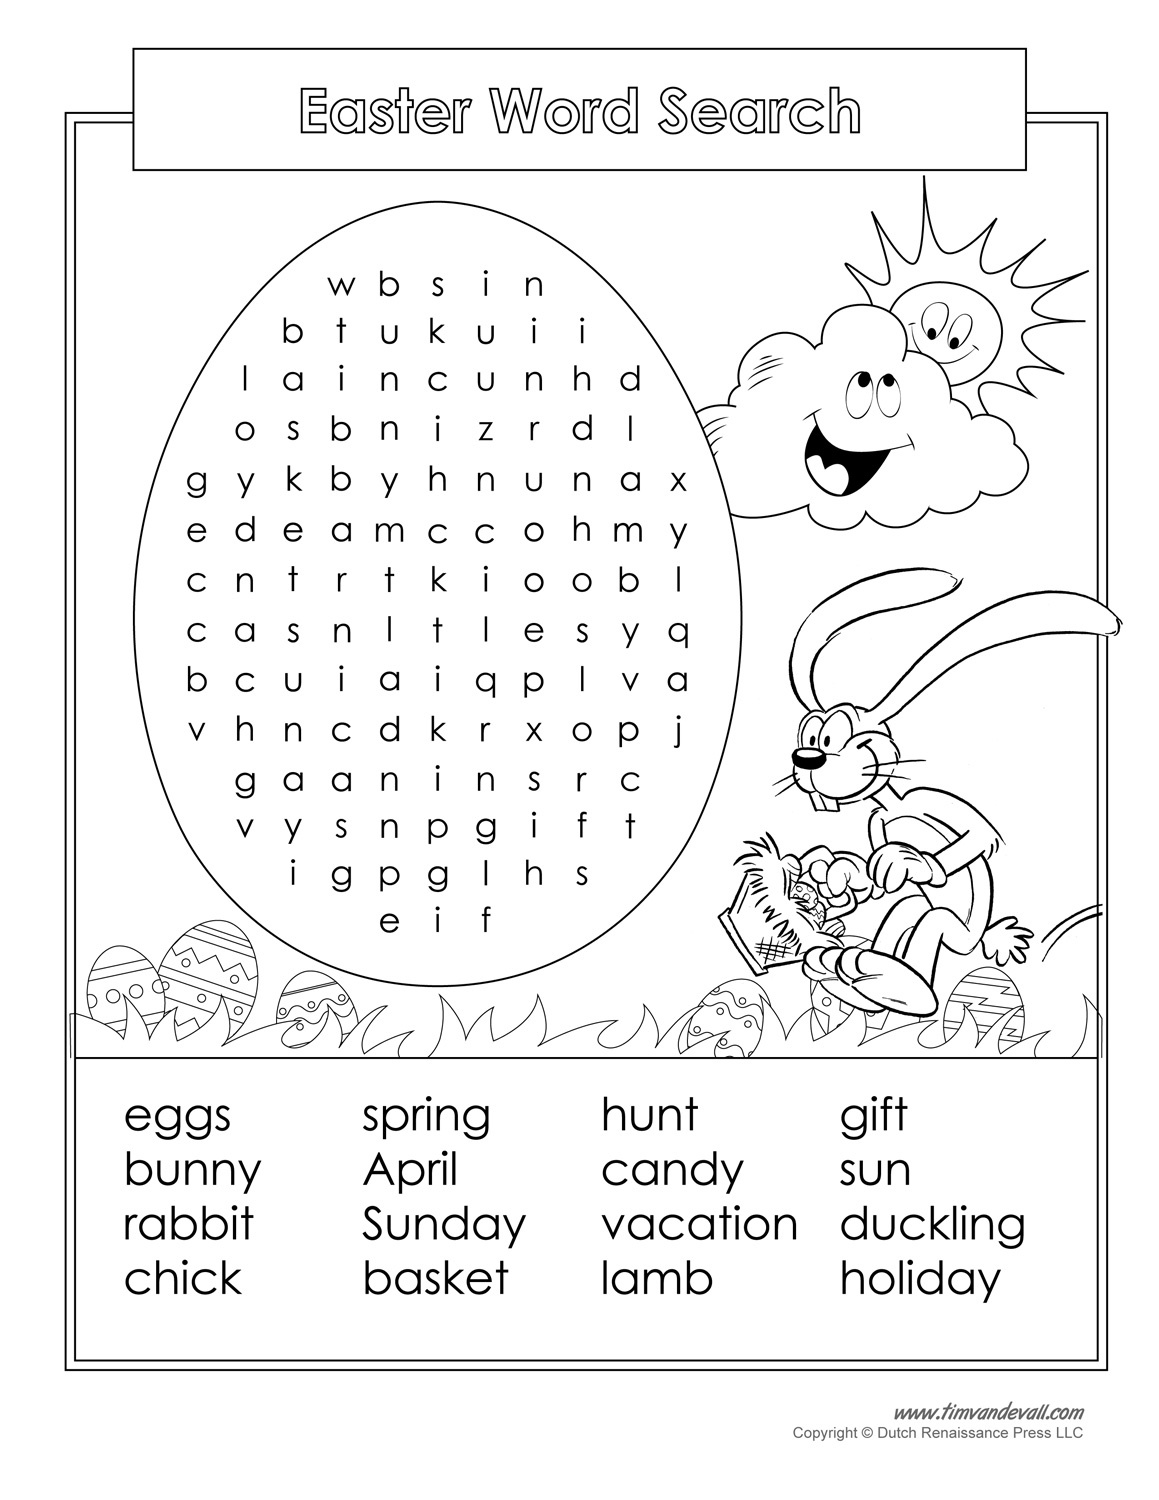 16 Printable Easter Word Search Puzzles   Kittybabylove - Free Printable Easter Puzzles For Adults